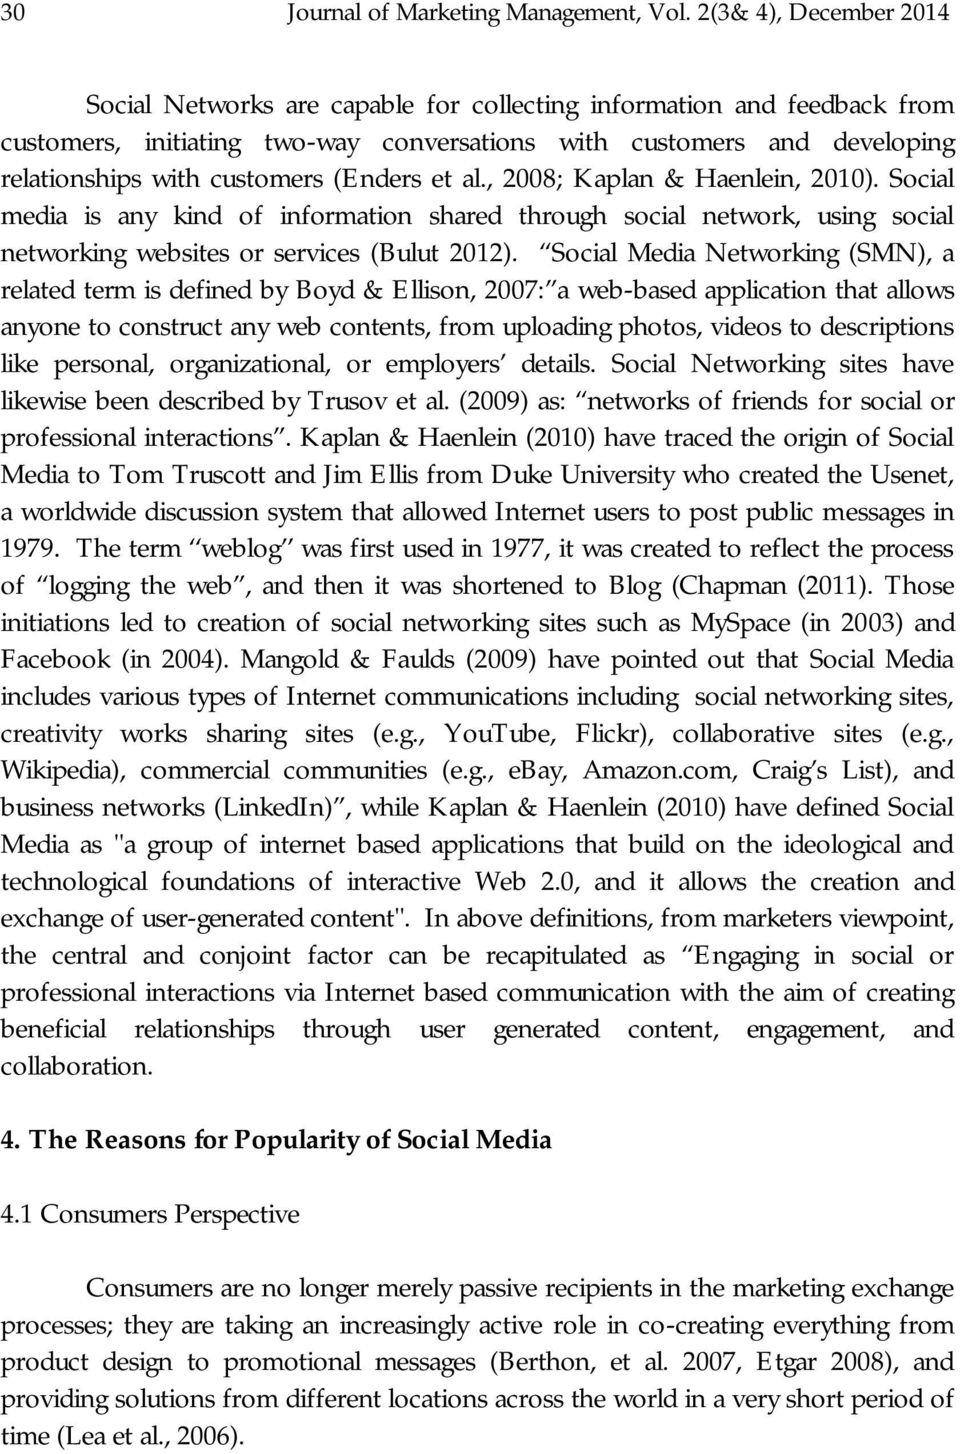 (Enders et al., 2008; Kaplan & Haenlein, 2010). Social media is any kind of information shared through social network, using social networking websites or services (Bulut 2012).